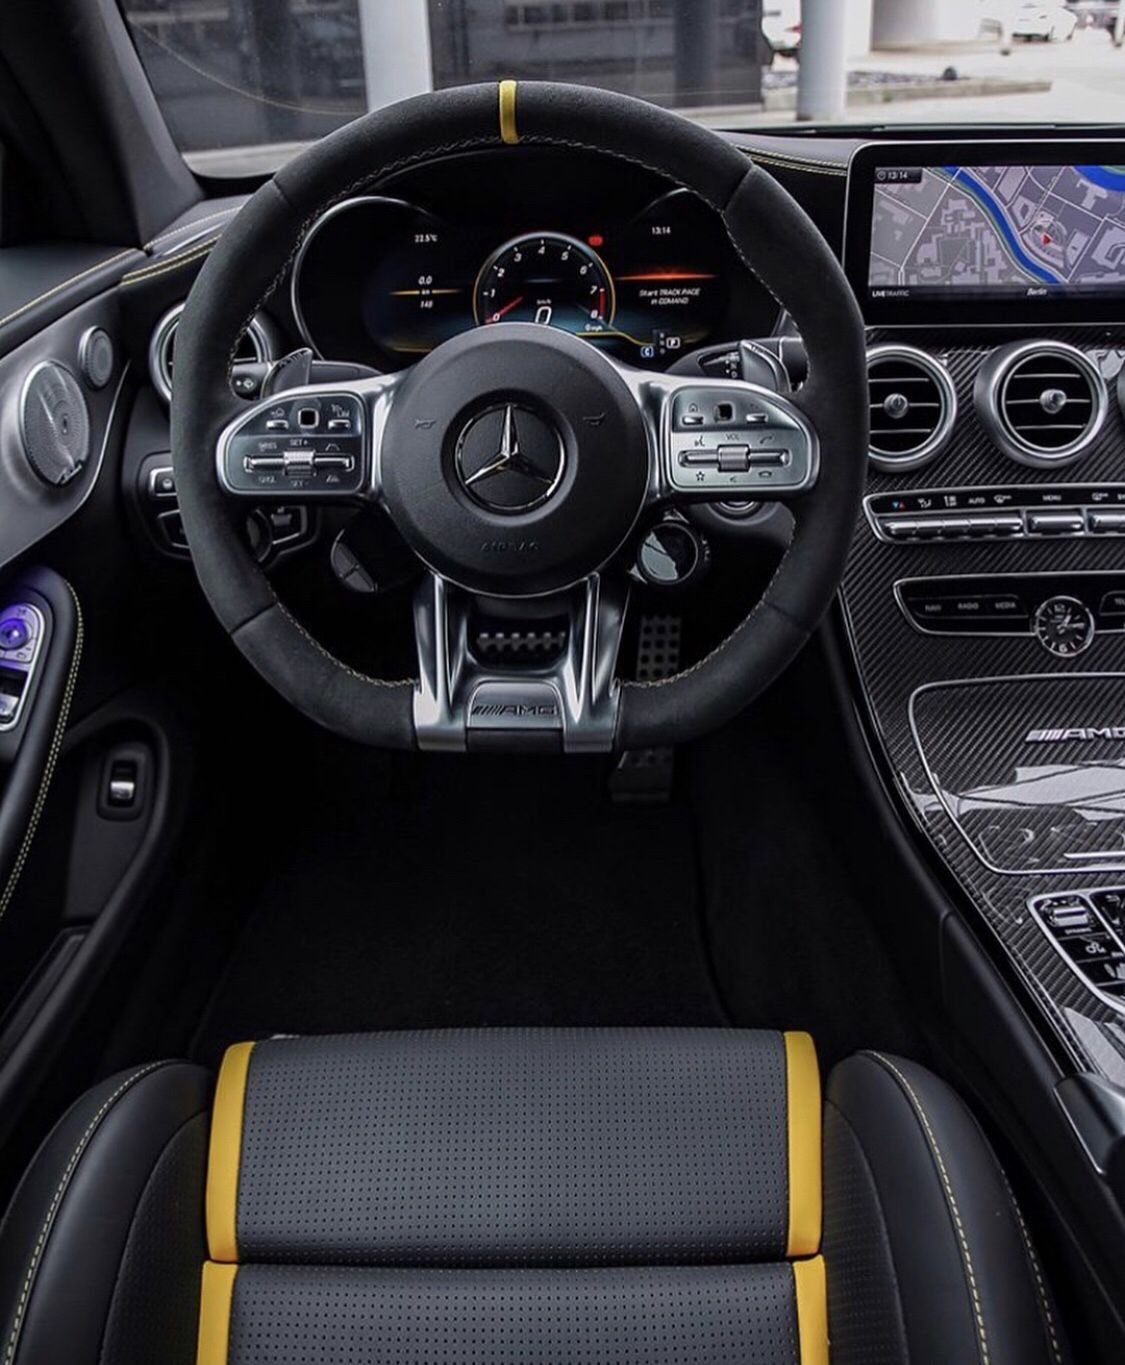 Amg C63s Coupe Interior With Images Mercedes Amg Mercedes Amg